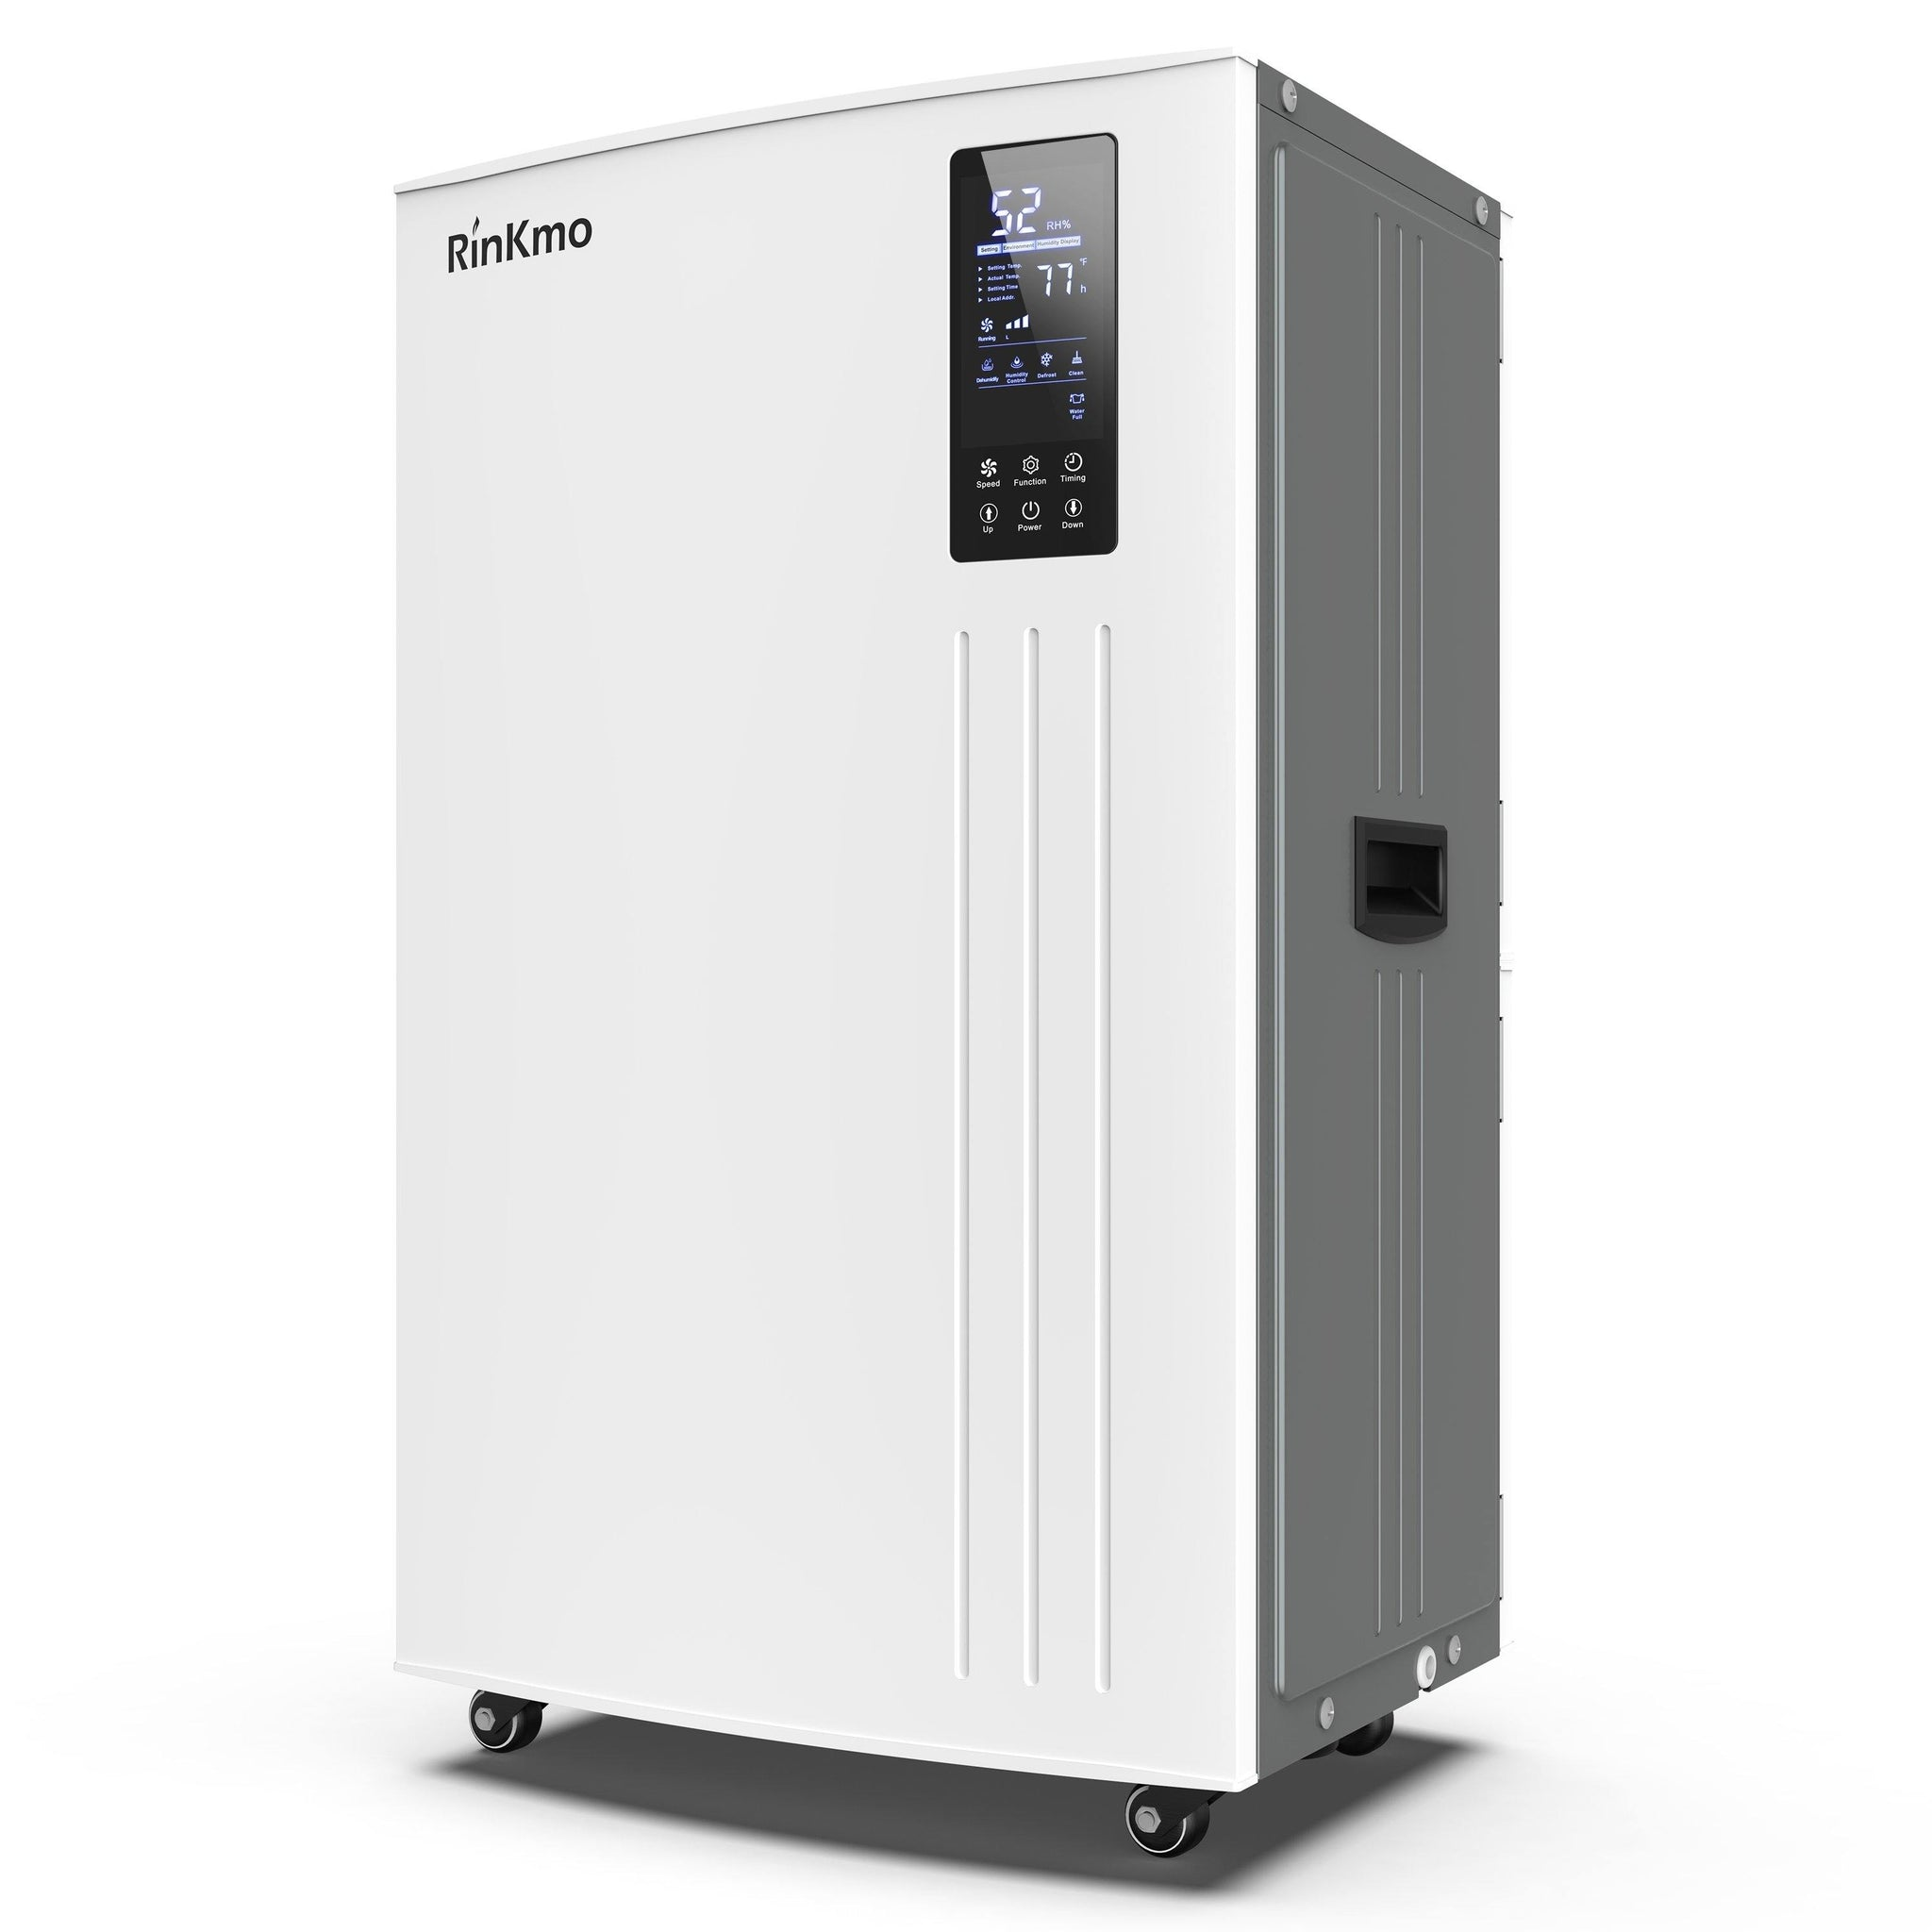 296 PPD Commercial Dehumidifier - Colzer